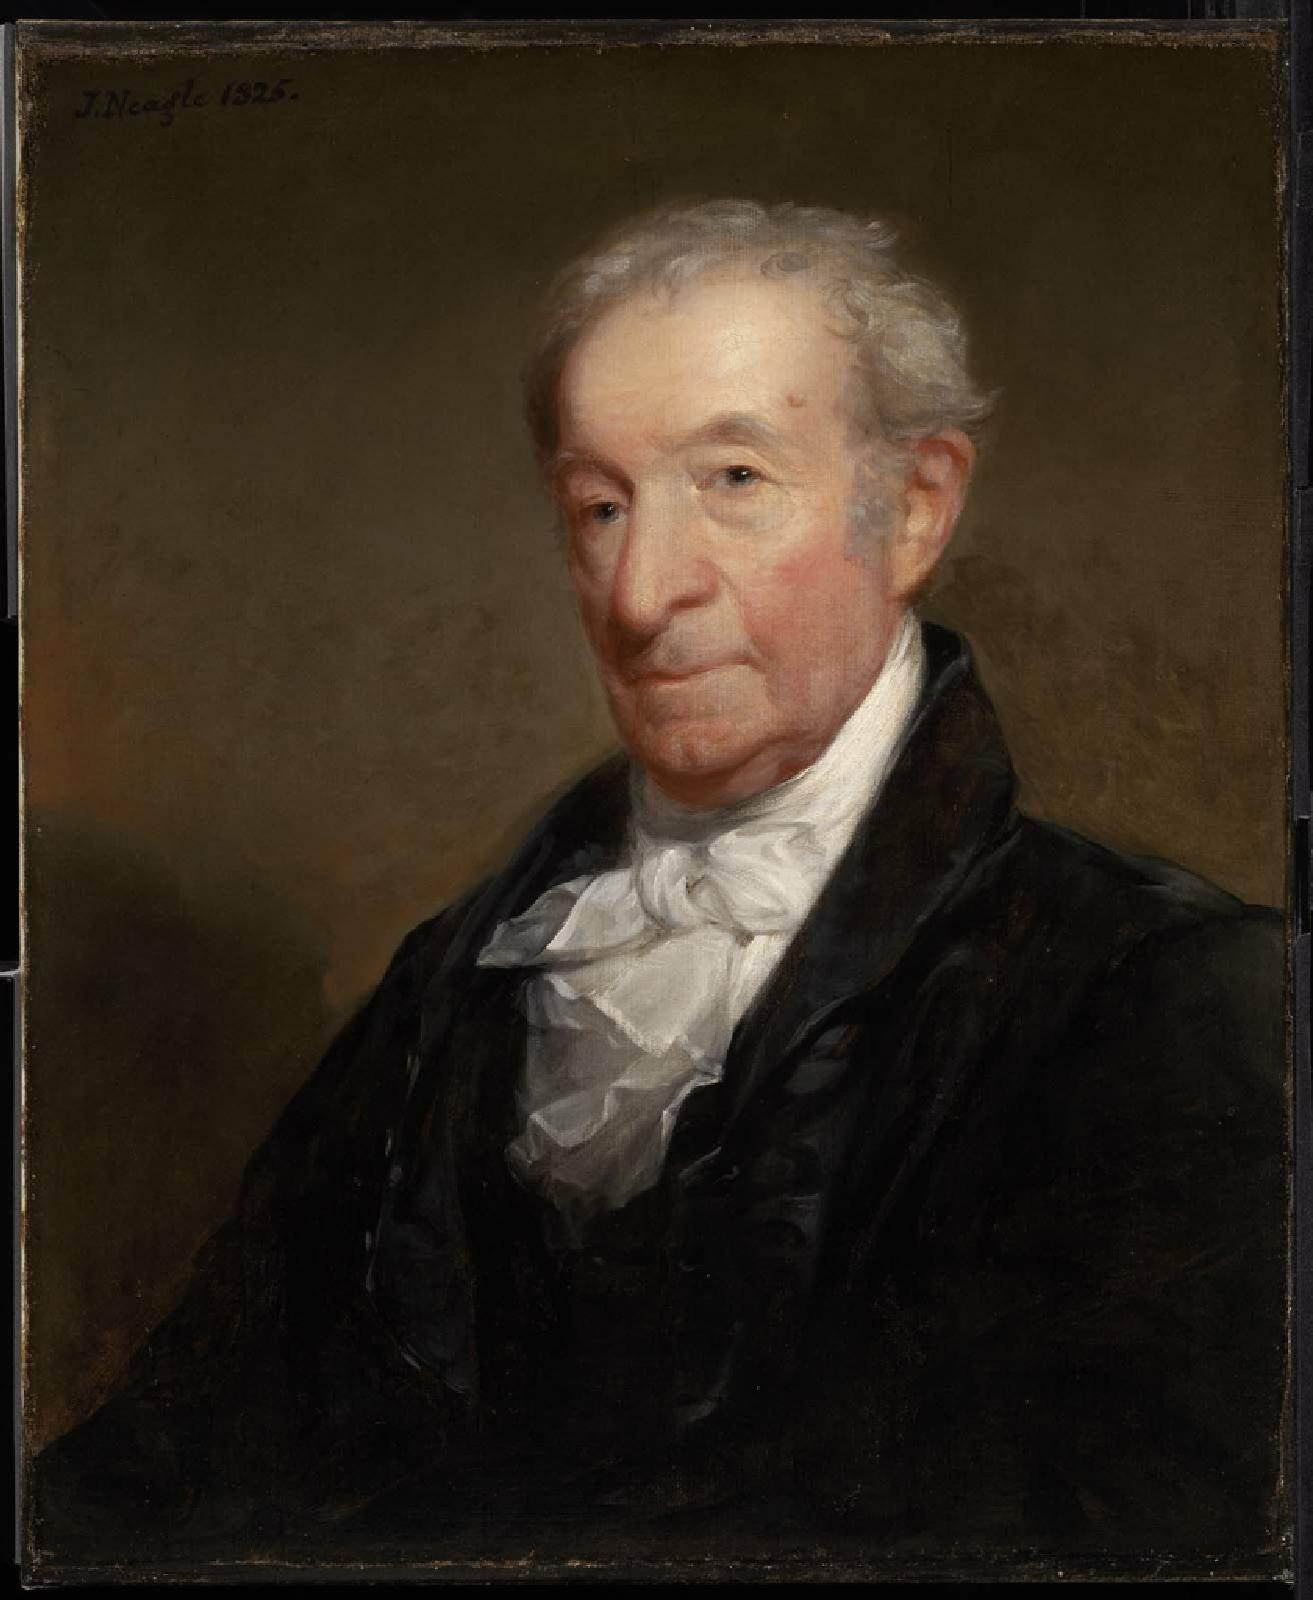 Gilbert Stuart by fellow painter John Neagle of Philadelphia. Neagle was one of Stuart's later American pupils who was inspired by Stuart and credited him for the European influences in his art. Neagle painted this piece in 1825 when he visited Stuart in Boston, three years before Stuart's death. Museum of Fine Arts, Boston.